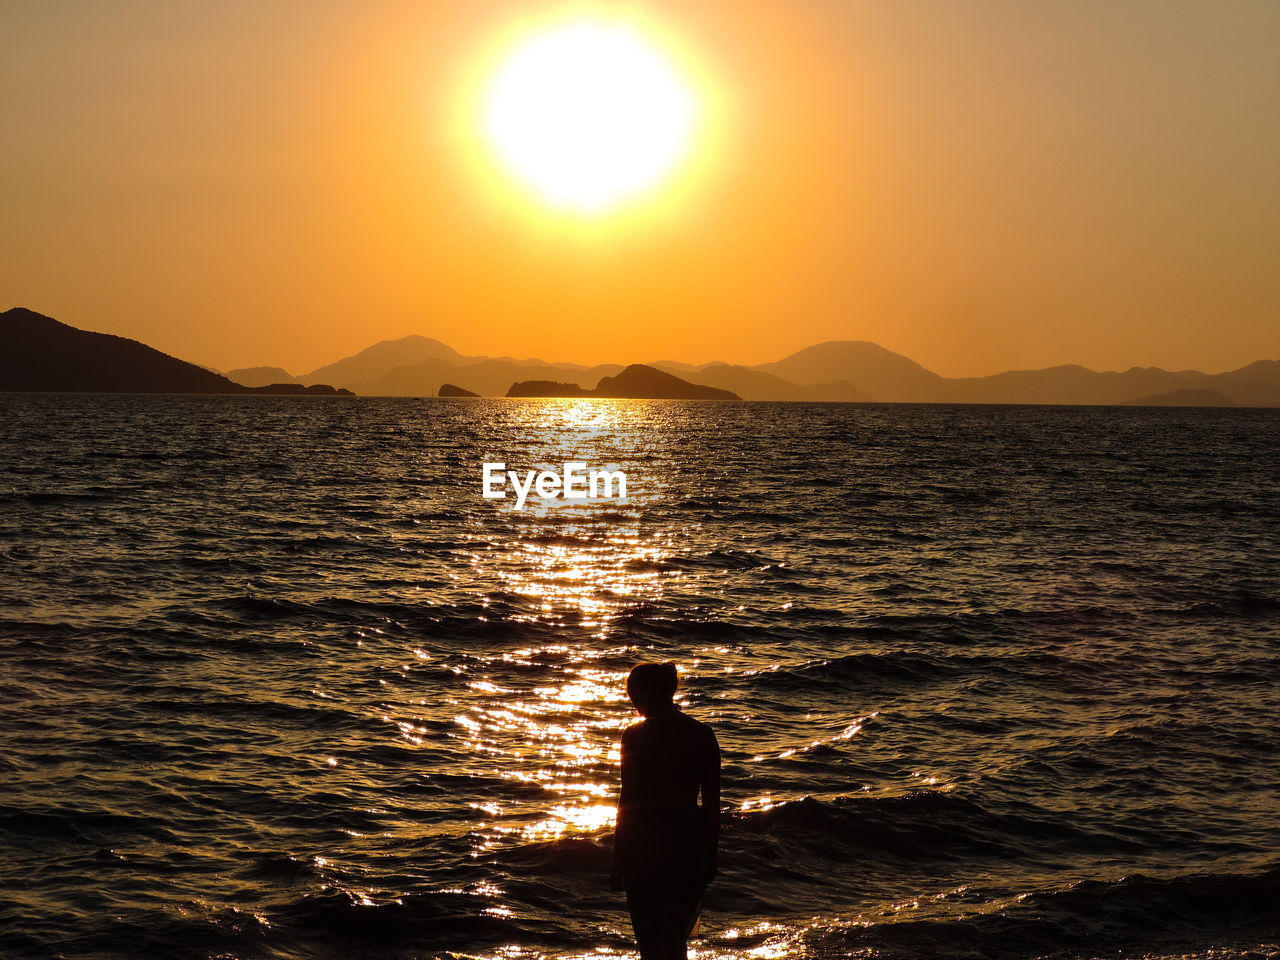 sunset, water, scenics - nature, sky, beauty in nature, sea, real people, silhouette, sun, standing, leisure activity, lifestyles, one person, sunlight, orange color, nature, idyllic, tranquil scene, tranquility, outdoors, lens flare, bright